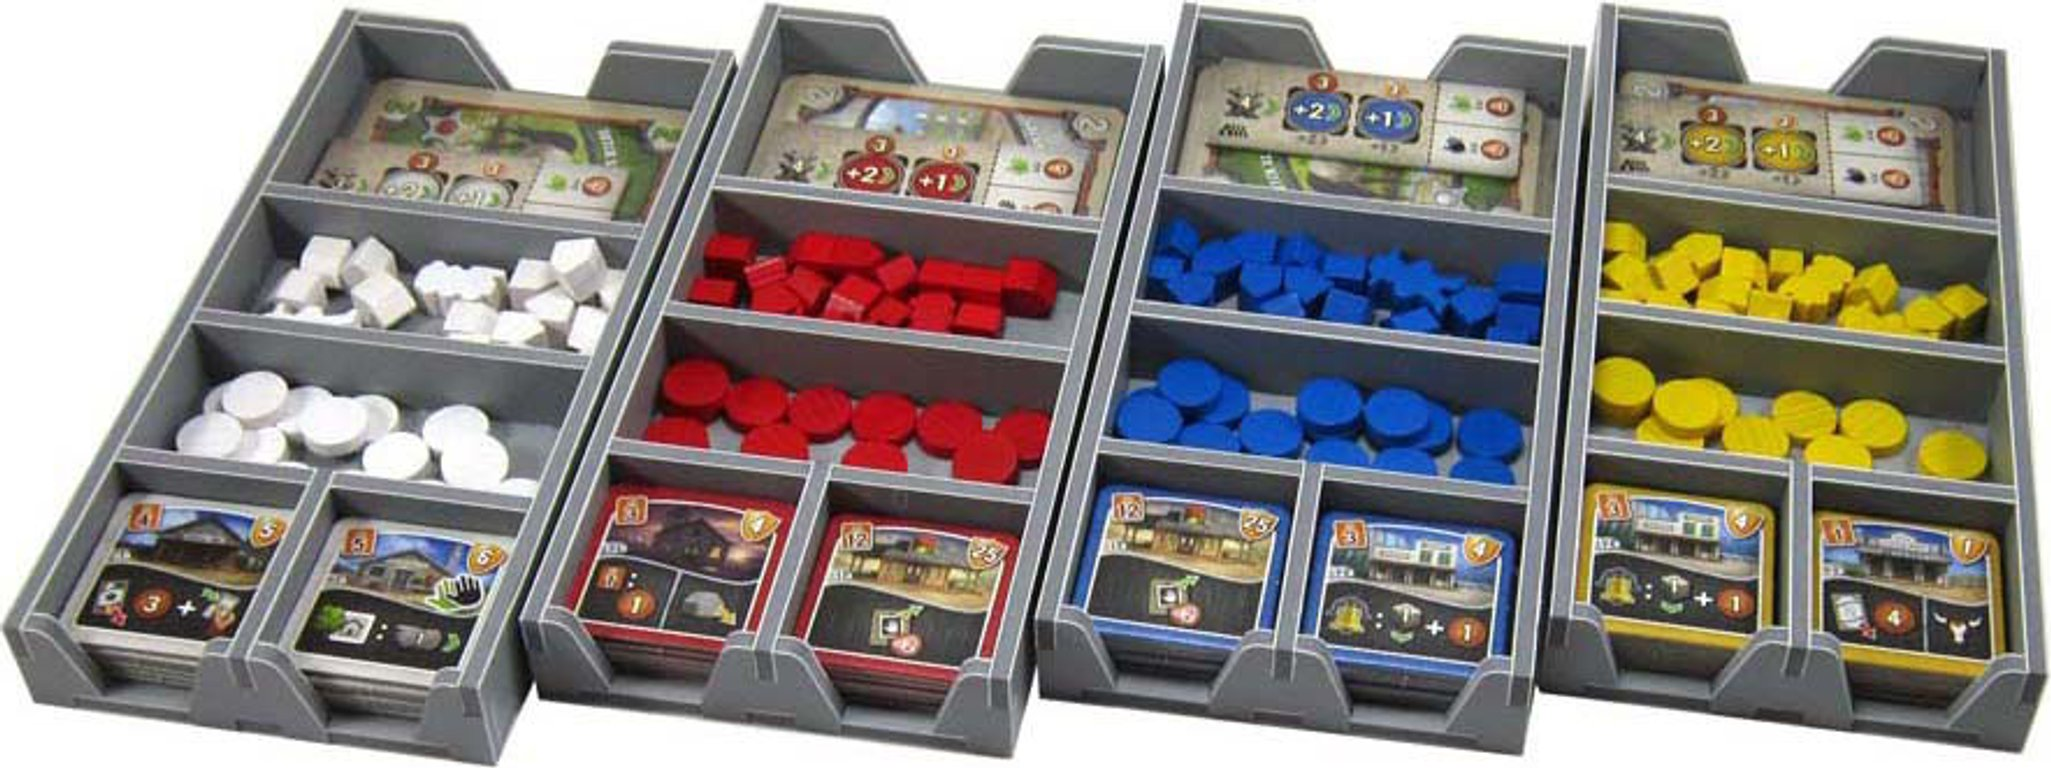 Great Western Trail Insert V2 components